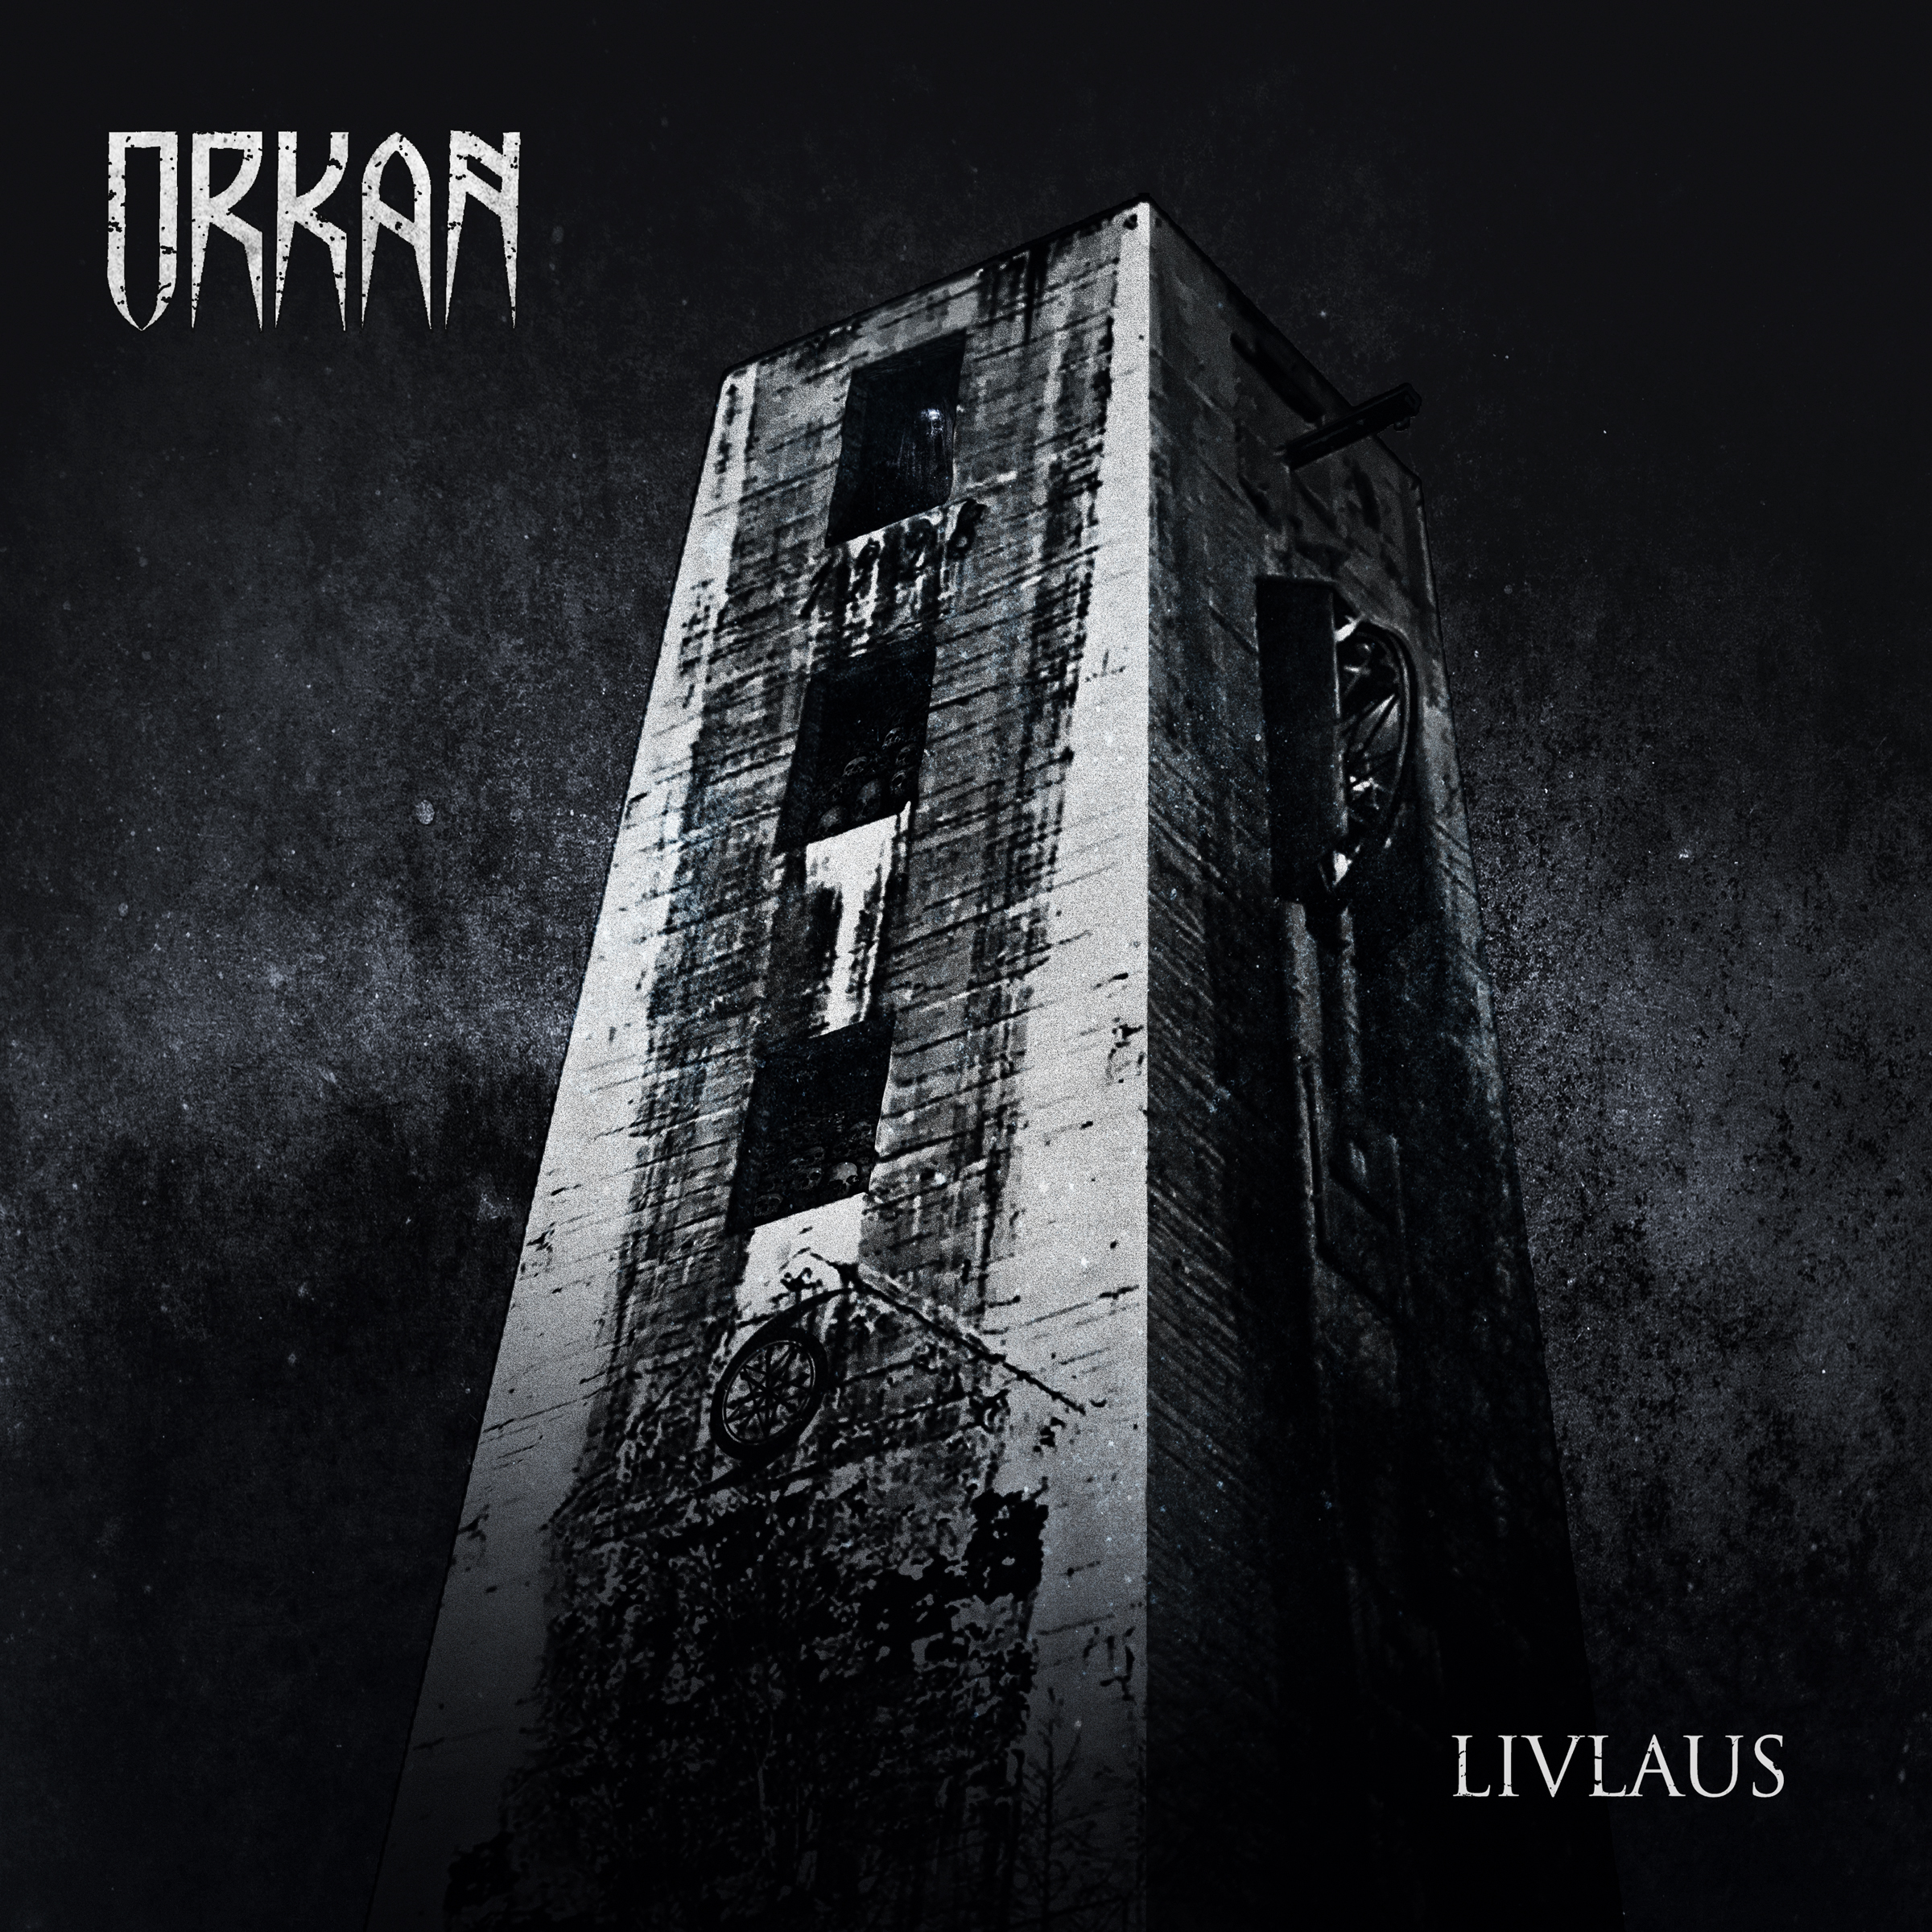 Orkan – Livlaus Review